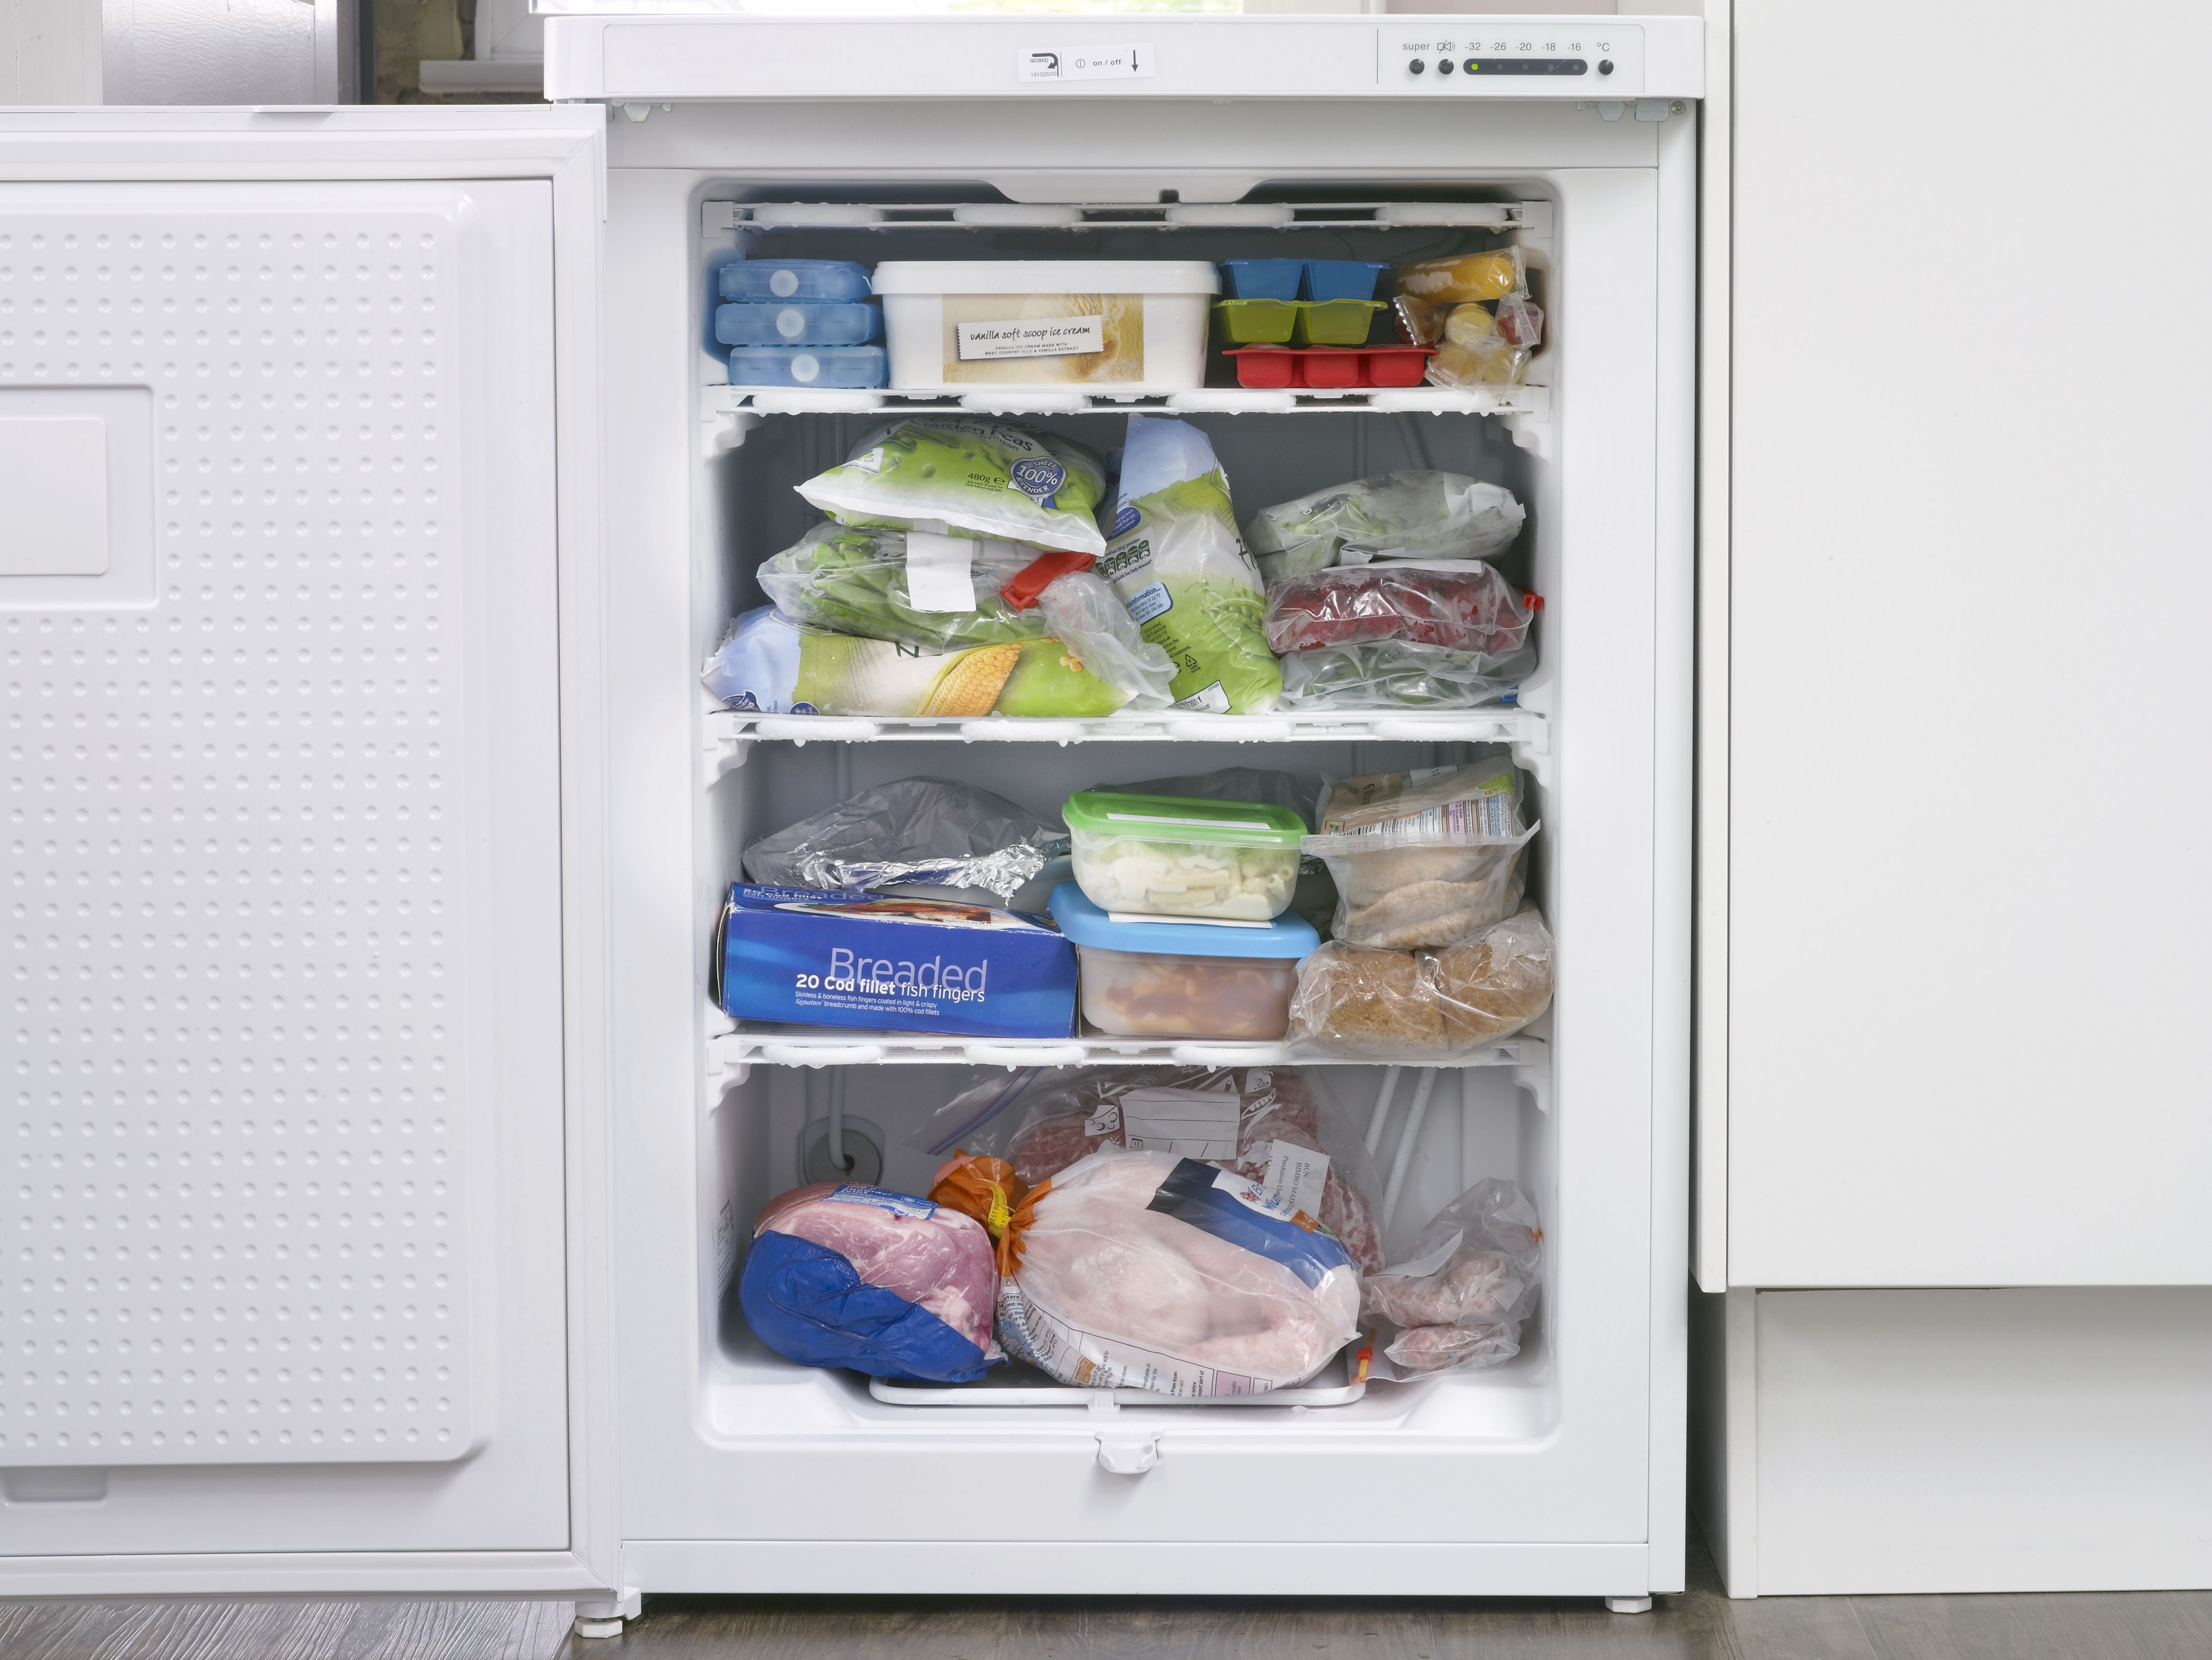 12 Tips for Stocking an Emergency Food Pantry